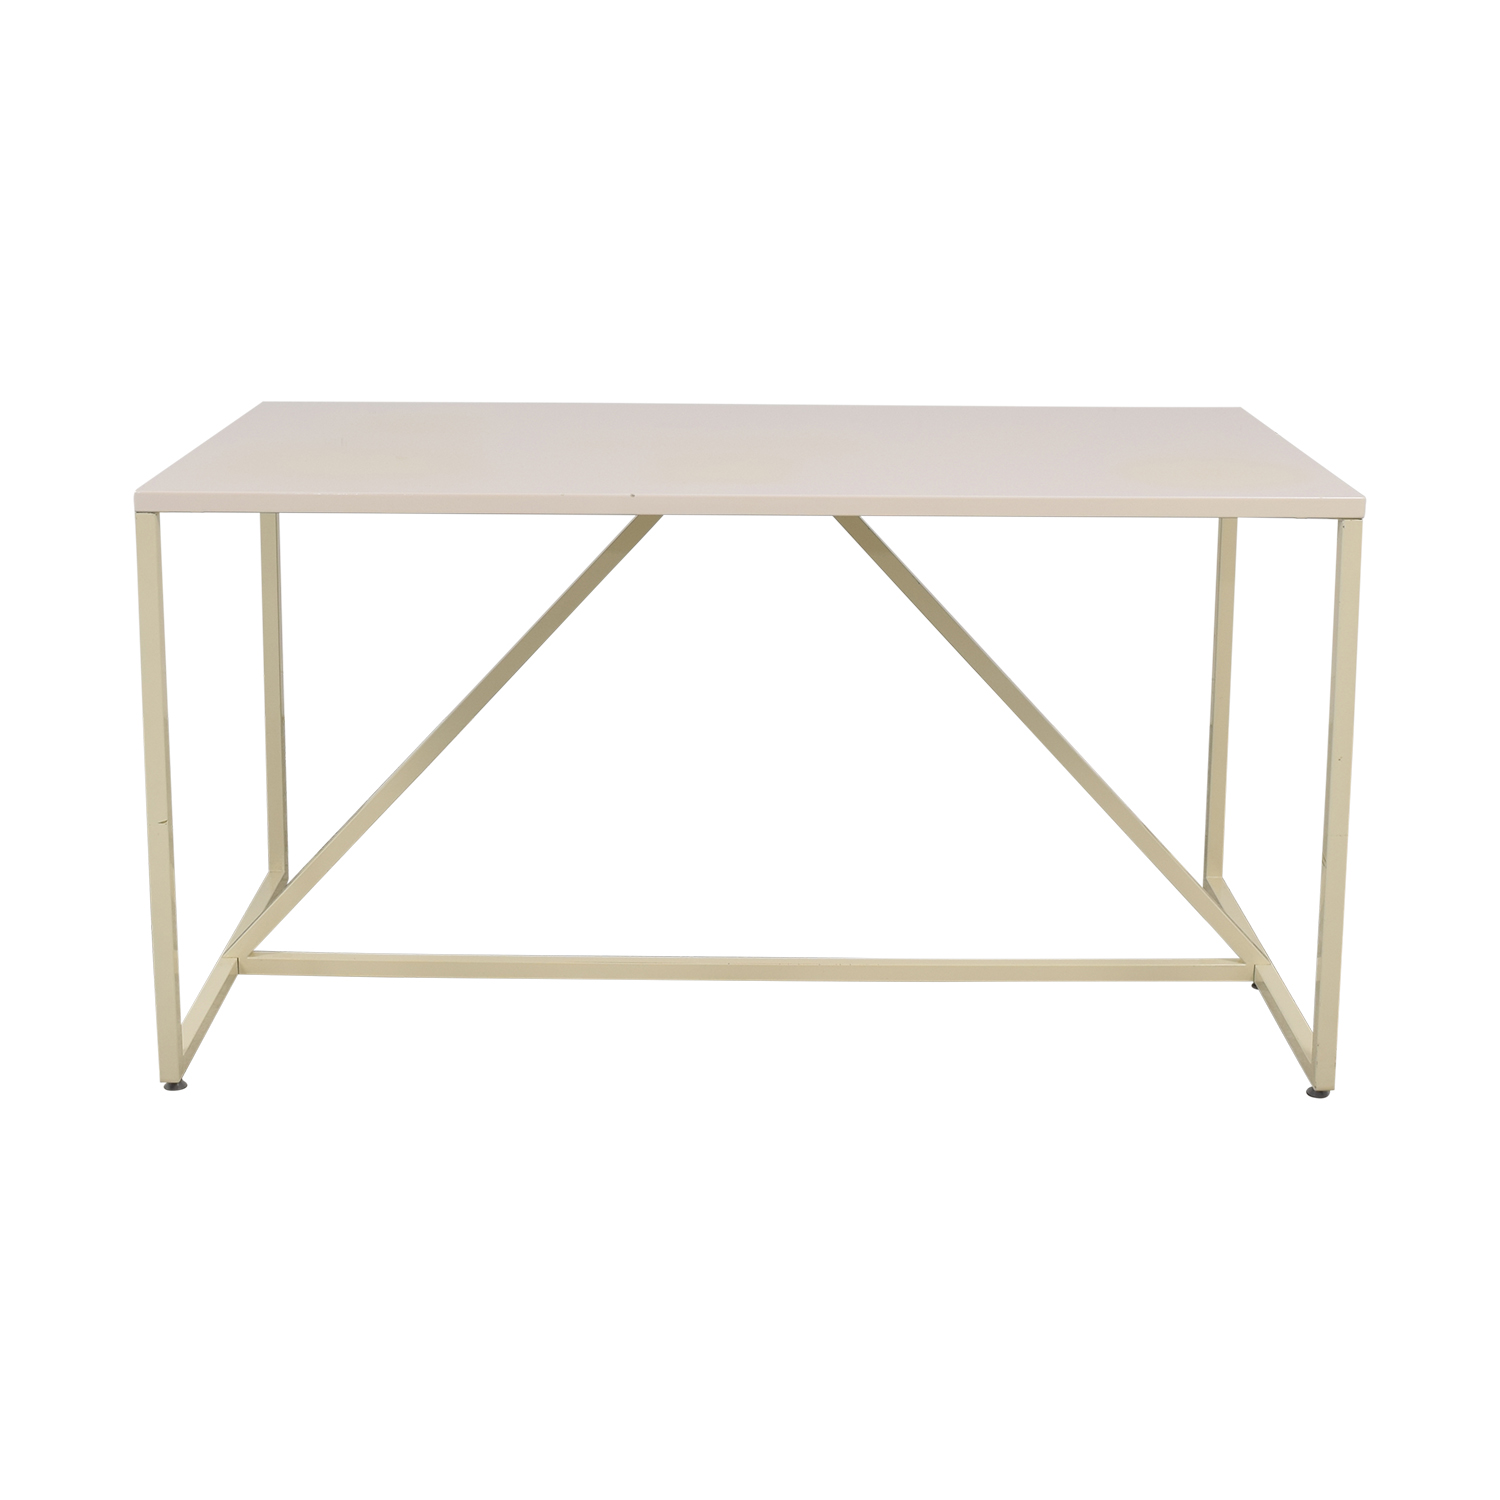 Blu Dot Strut Desk / Tables